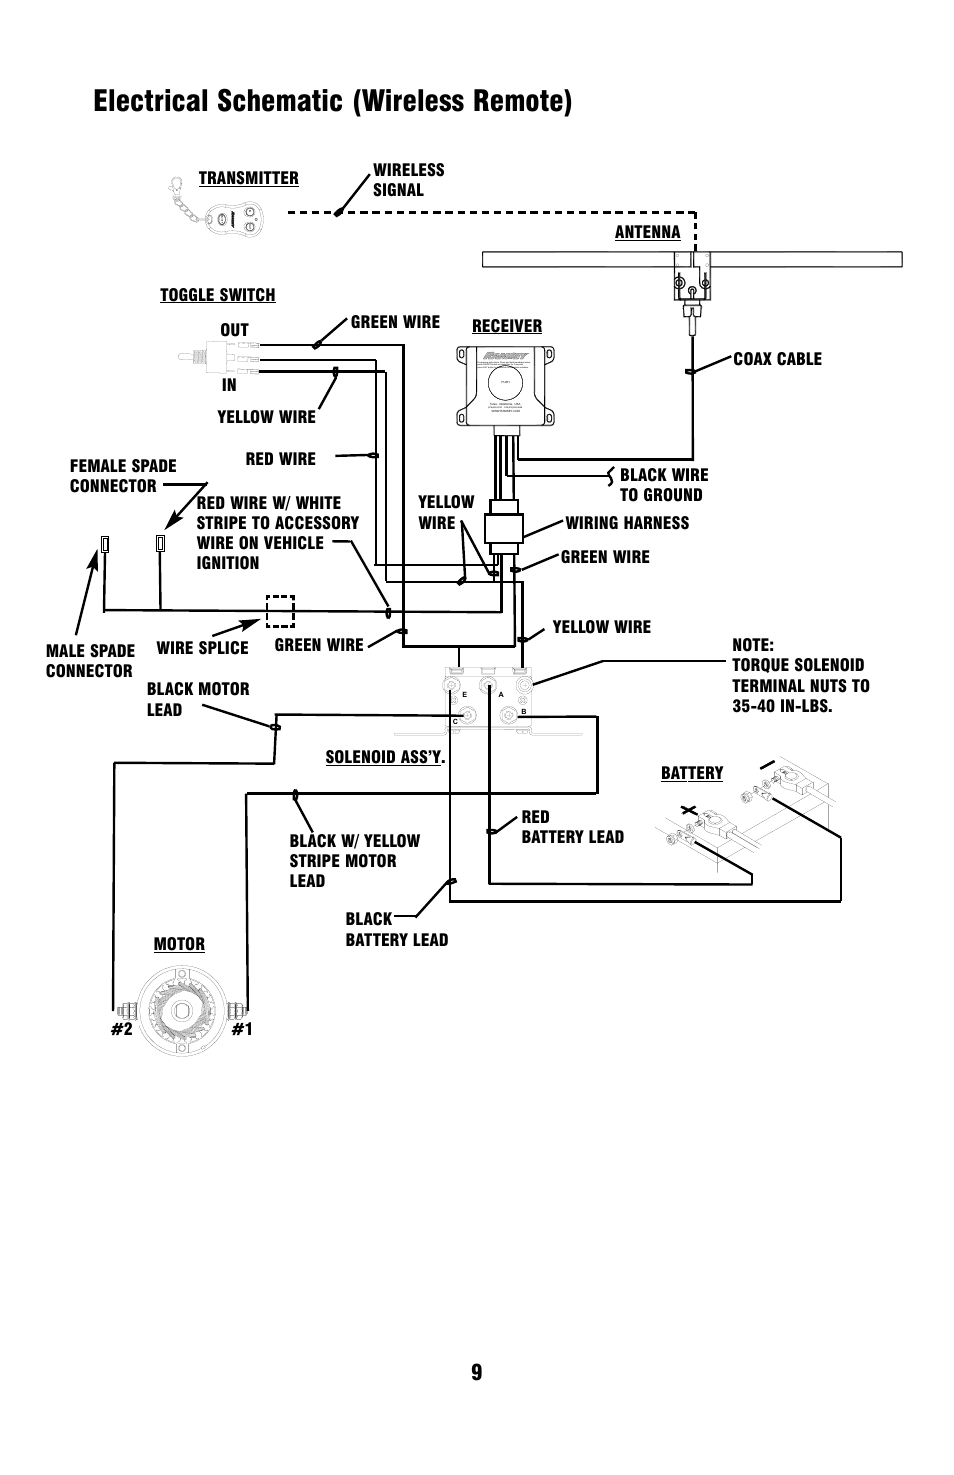 electrical schematic (wireless remote), wire splice | ramsey winch on  super c hydraulic